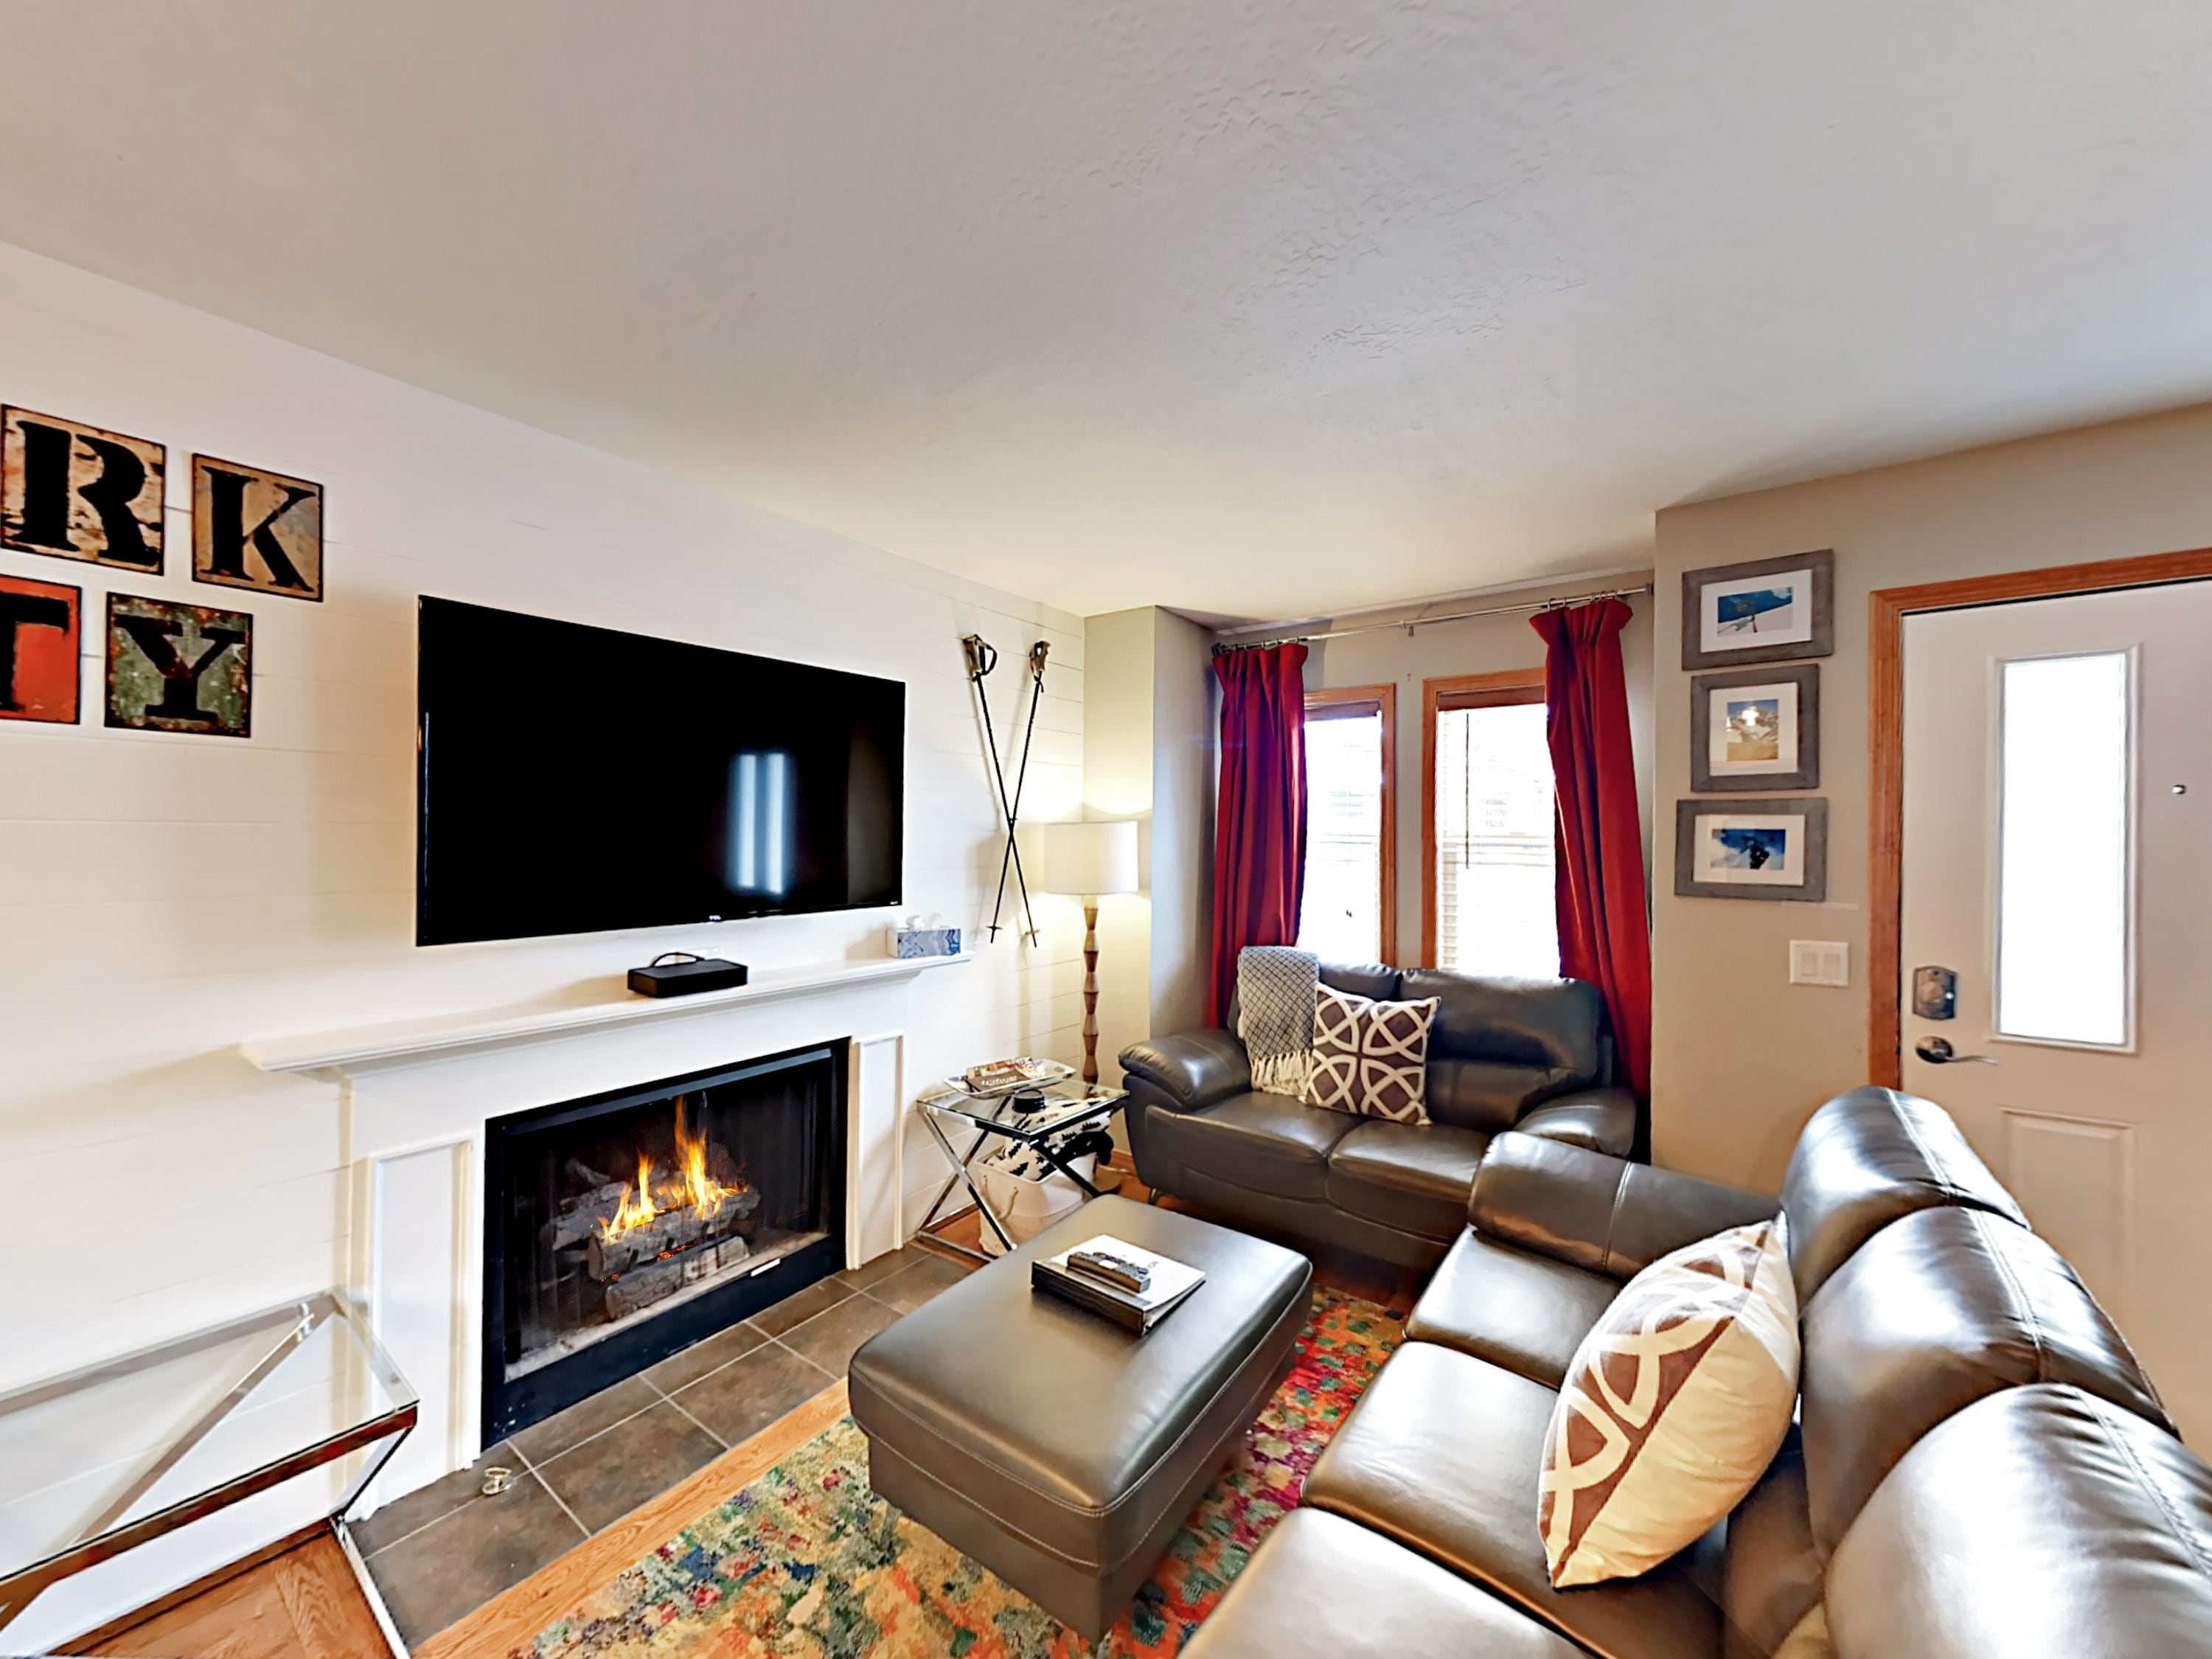 Seating for 5 in the living area, equipped with a flat screen TV and complimentary Wi-Fi.